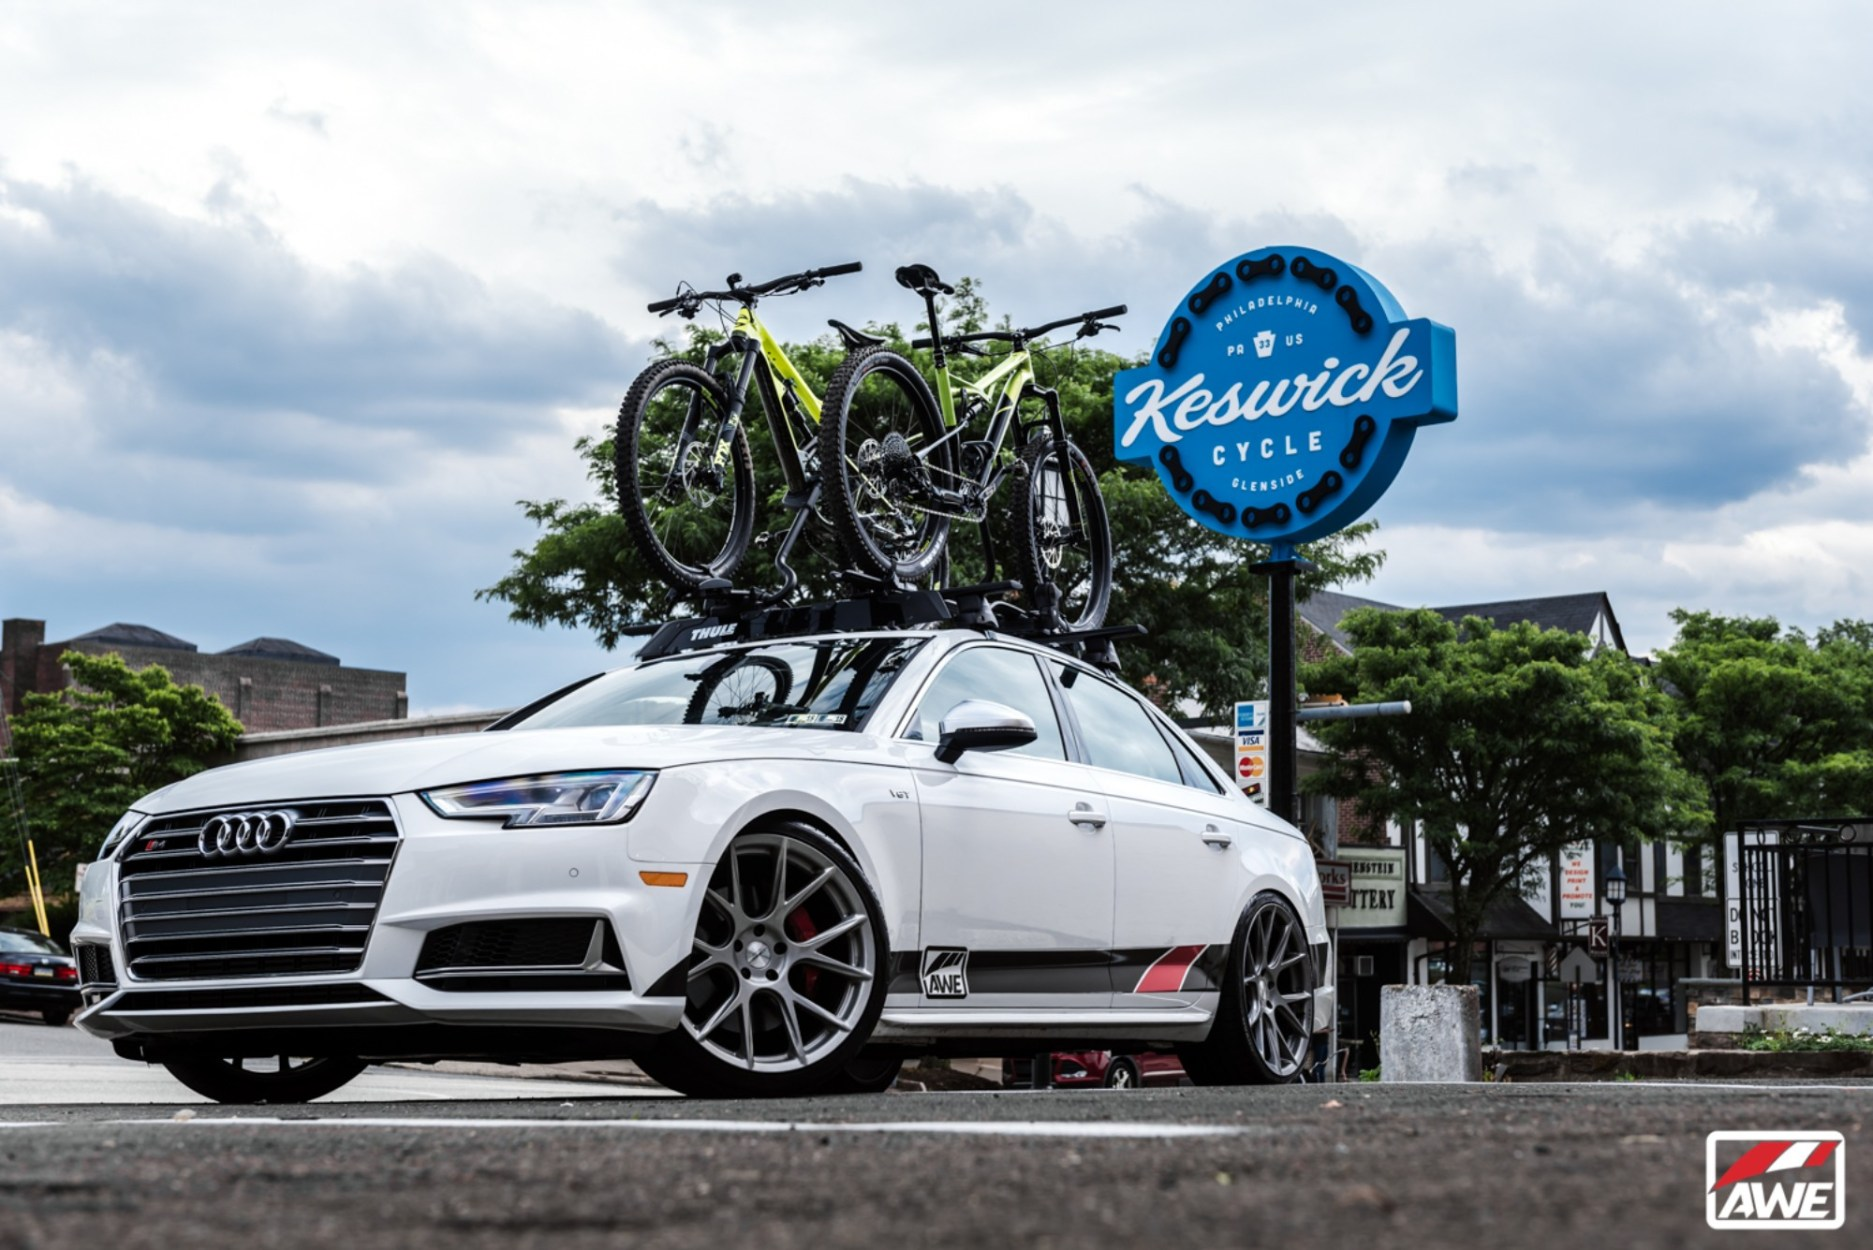 AWE Announces B9 S4 Project Car, Partners With Thule, Cannondale, H&R, Vossen, and Yokohama